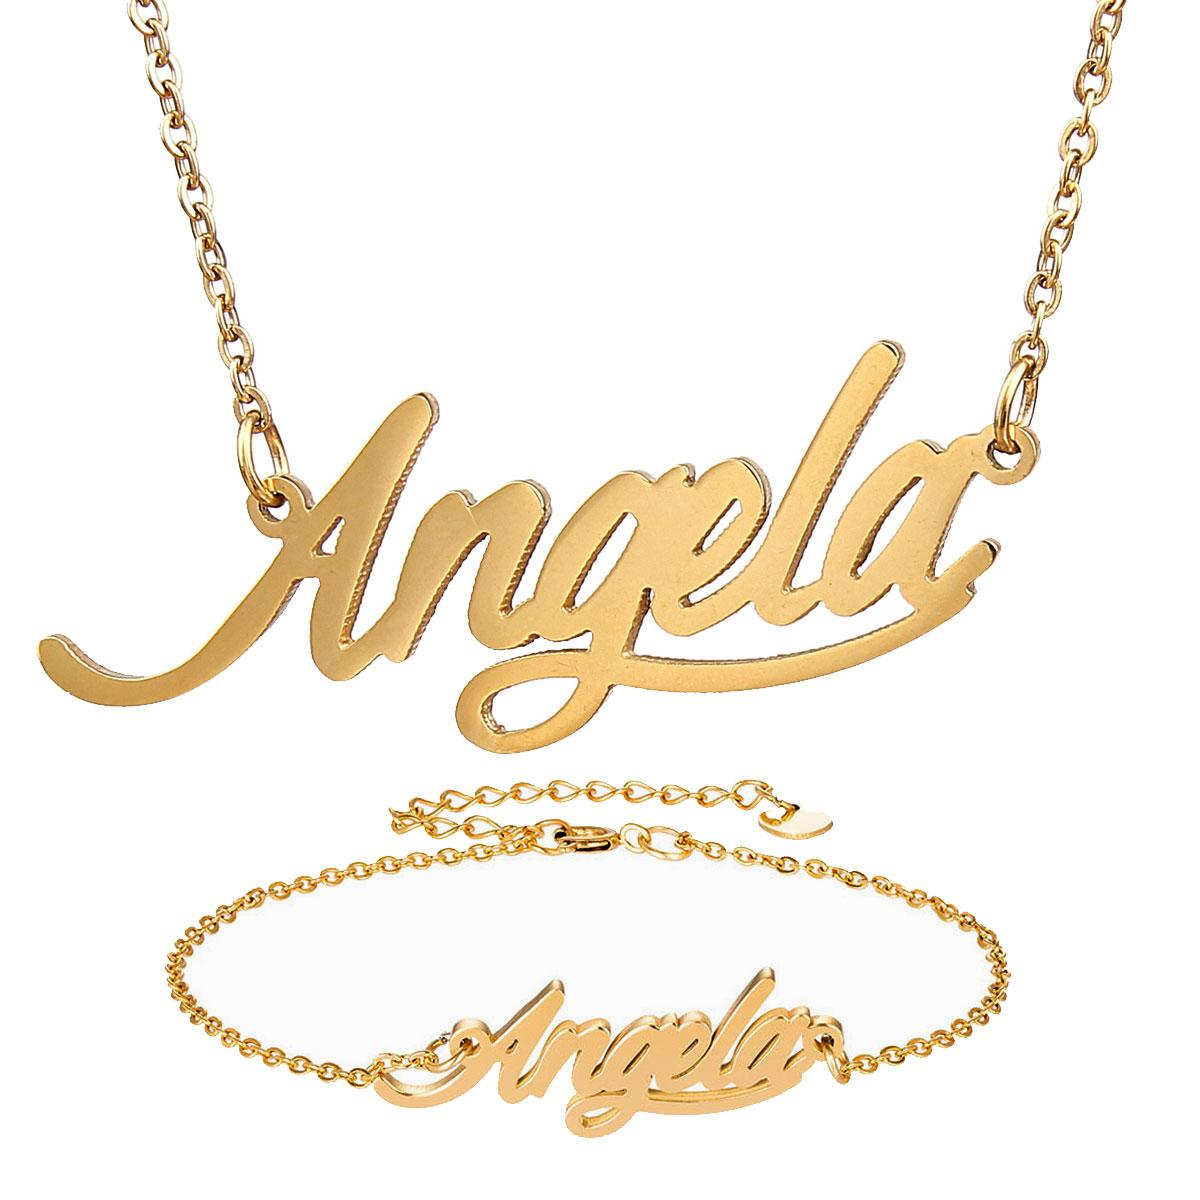 """Fashion Jewelry Stainless Steel Name Necklace + Bracelet Set """" Angela """" Script Letter Gold Choker Chain Necklace Pendant Nameplate Gift"""